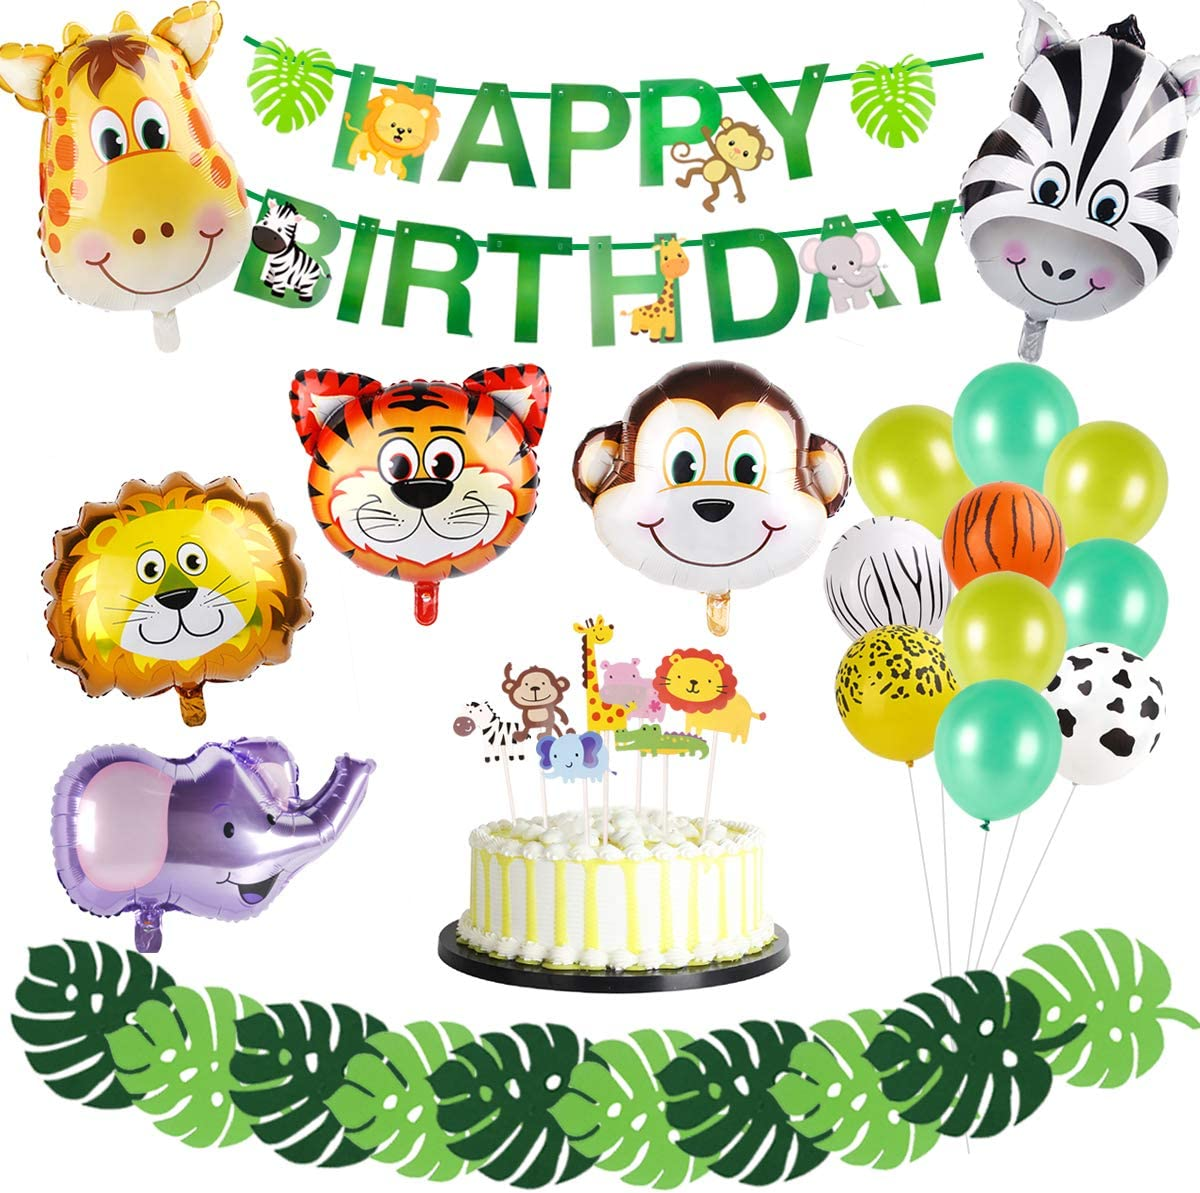 Safari Jungle Animal Party Supplies – 6pcs Animal foil balloon, Latex Balloons, Green Palm Leaves, HAPPY BIRTHDAY Banner, Animal Cake Topper Safari Party Supplies , Kids Boys Birthday Baby Shower Décor